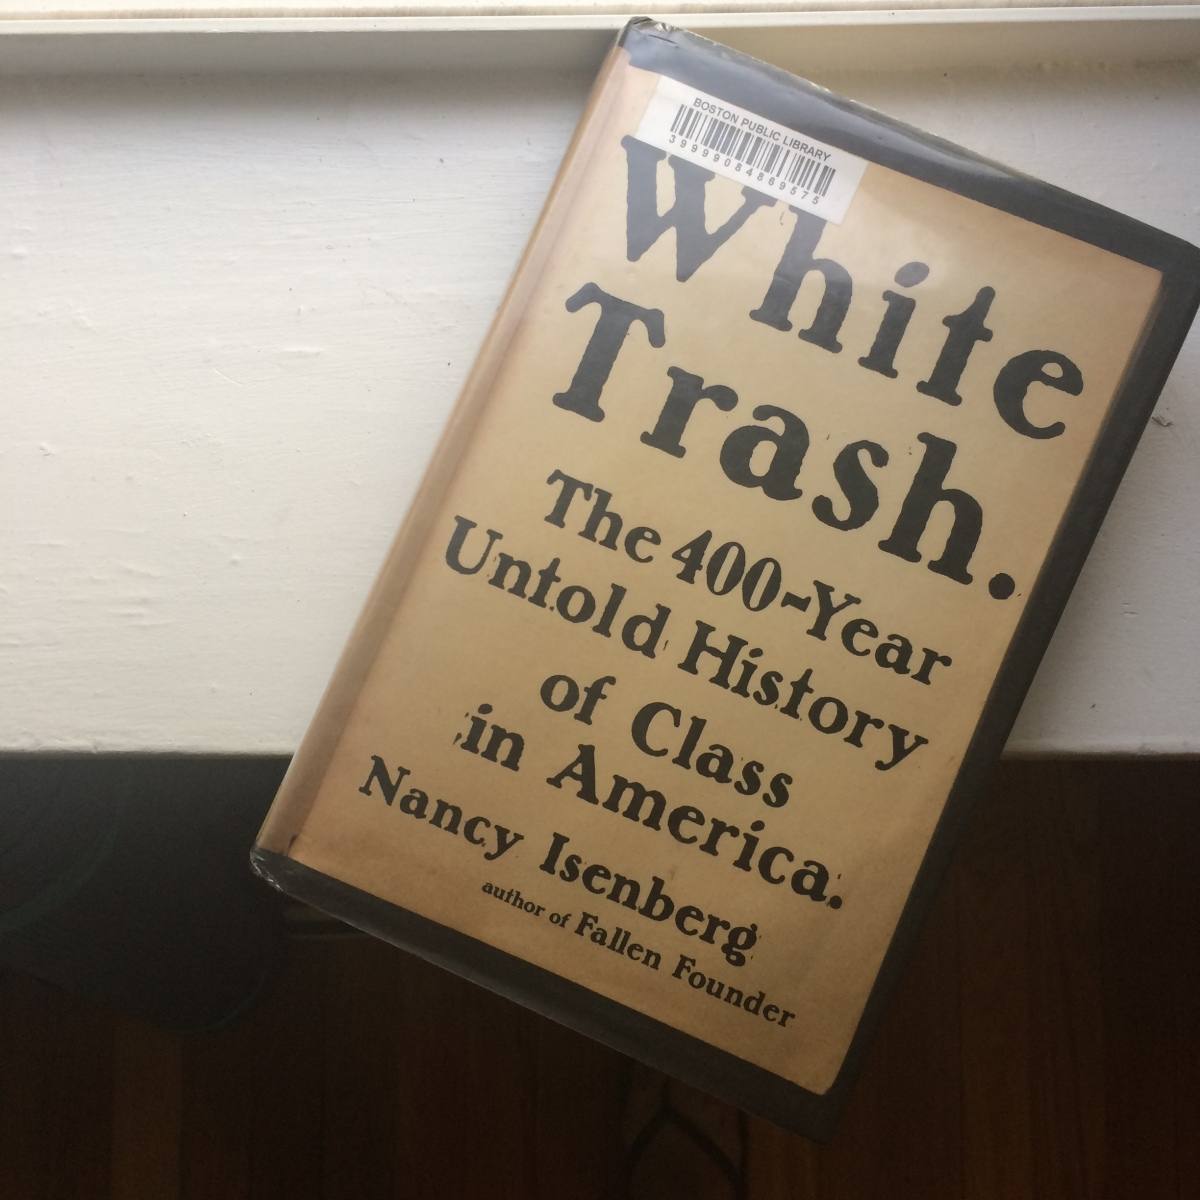 Five Things About White Trash: The 400-Year Untold History of Class in America By NancyIsenberg